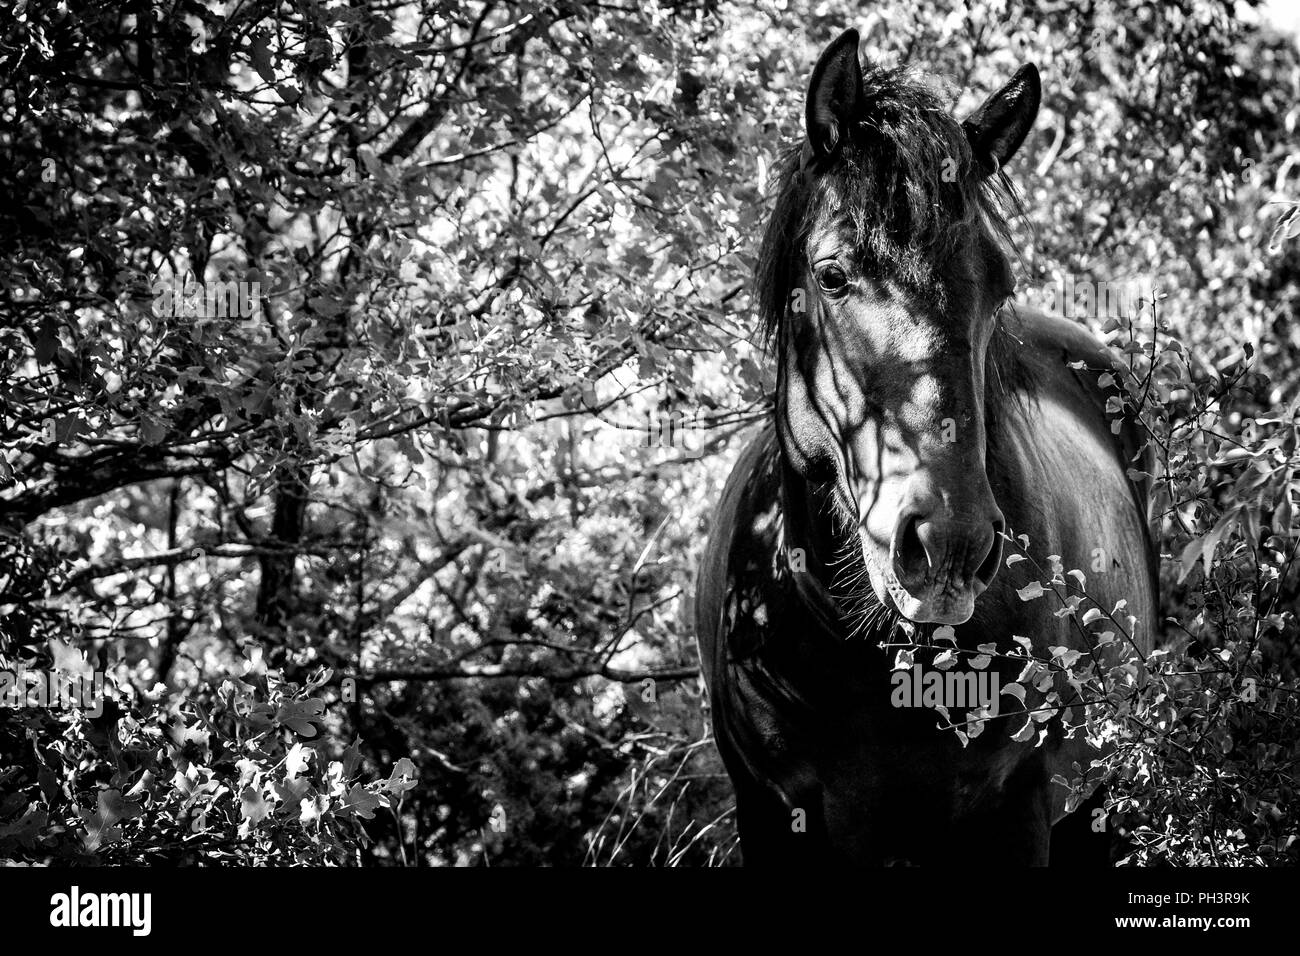 Wild horse in a forest (Black and white) - Stock Image